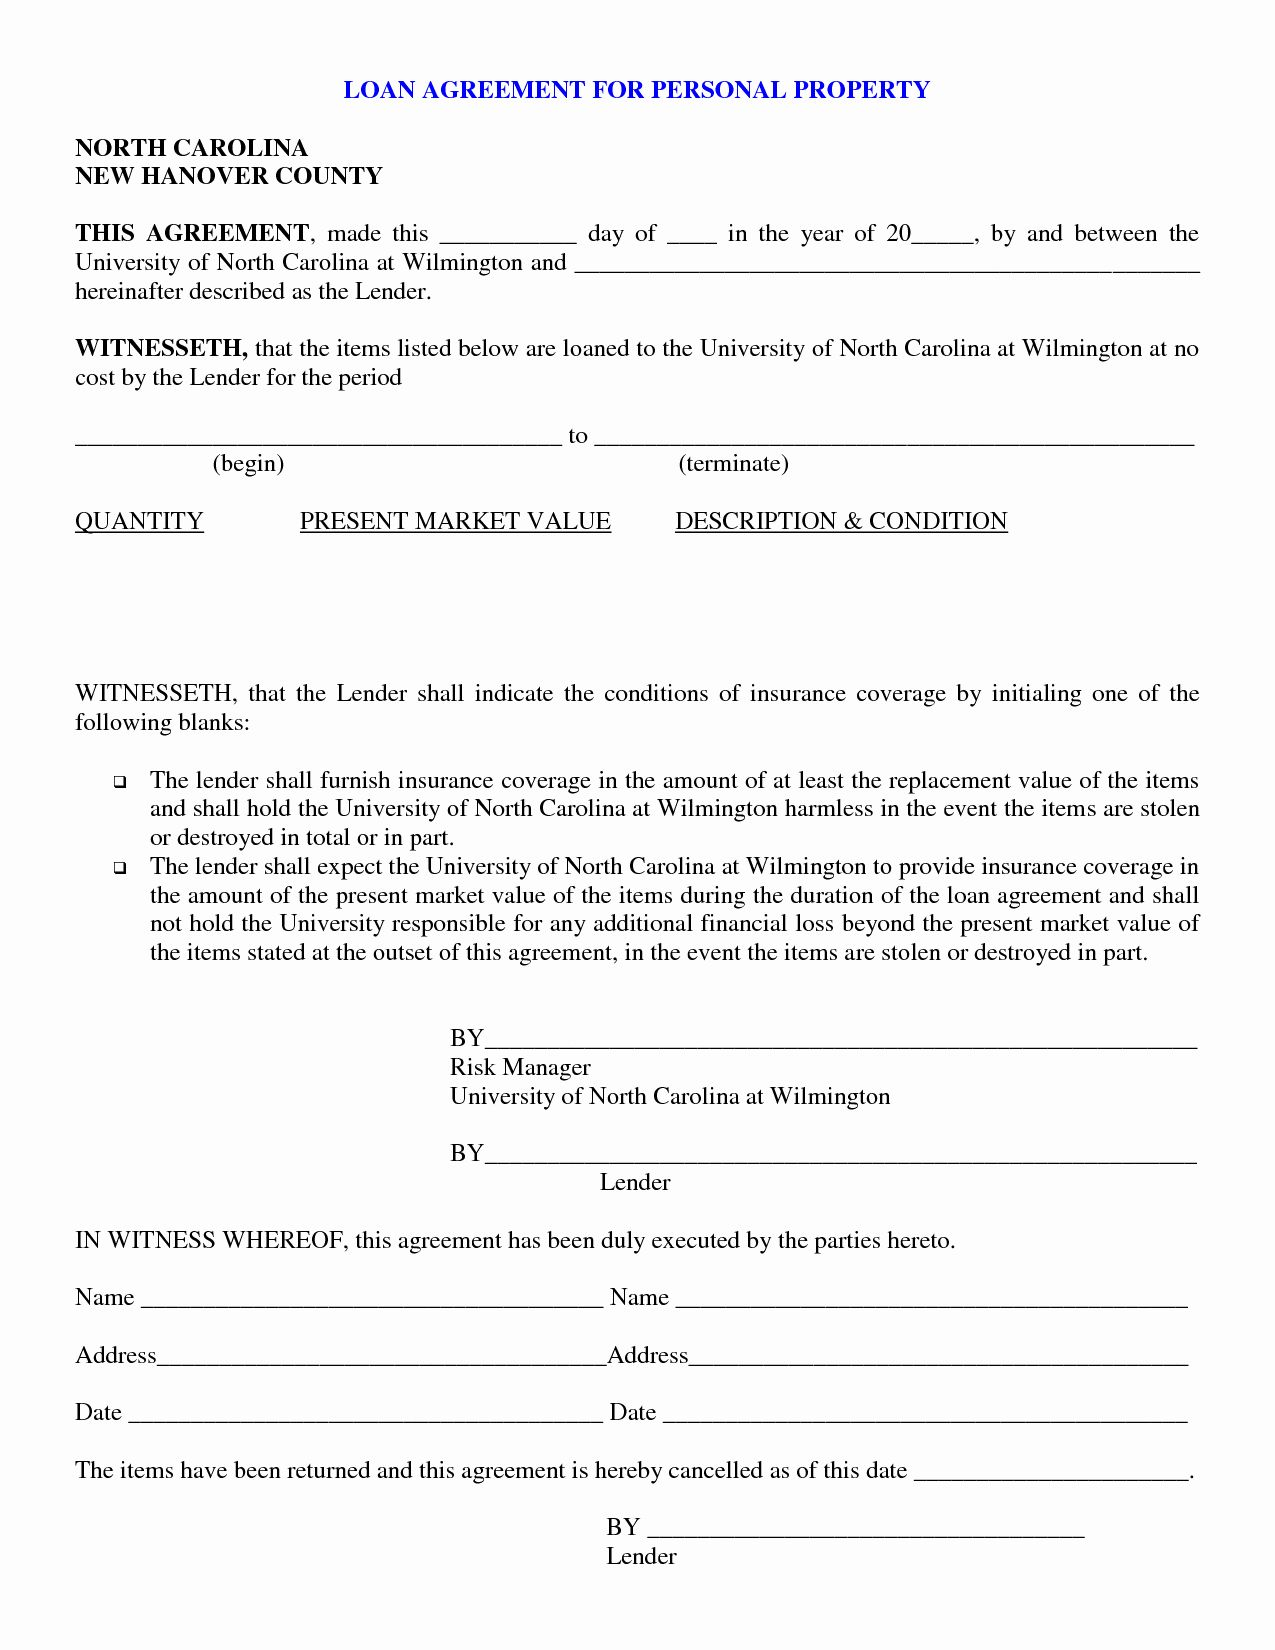 Loan Agreement Template Pdf Fresh Free Printable Loan Agreement Form Form Generic Bad Credit Car Loan Contract Template Car Payment Car loan agreement template free